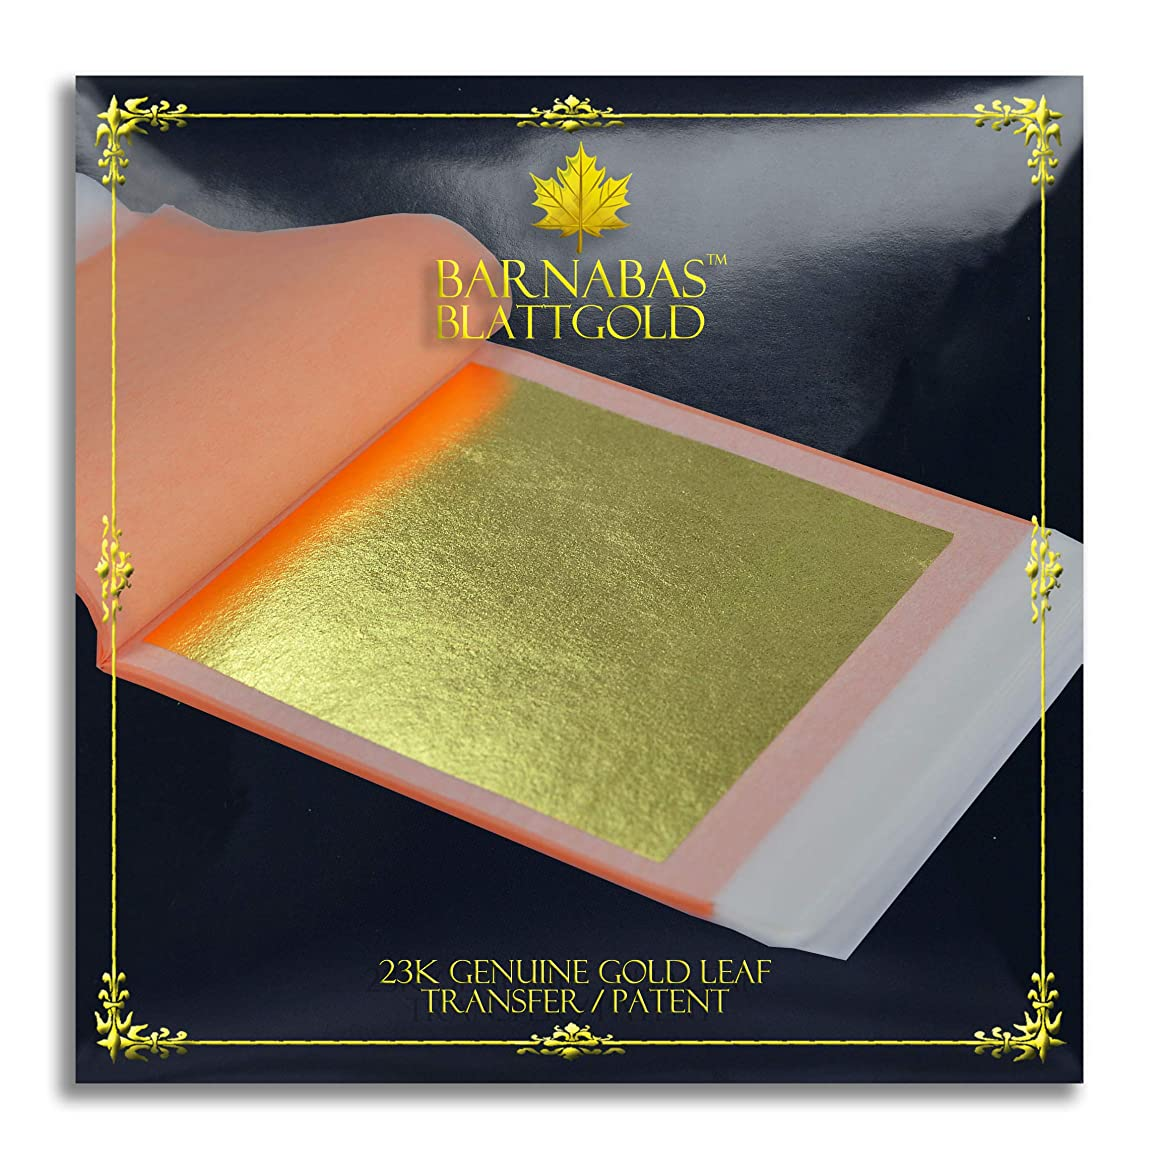 Genuine Gold Leaf Sheets 23k - by Barnabas Blattgold - 3.4 inches - 10 Sheets Booklet - Transfer Patent Leaf